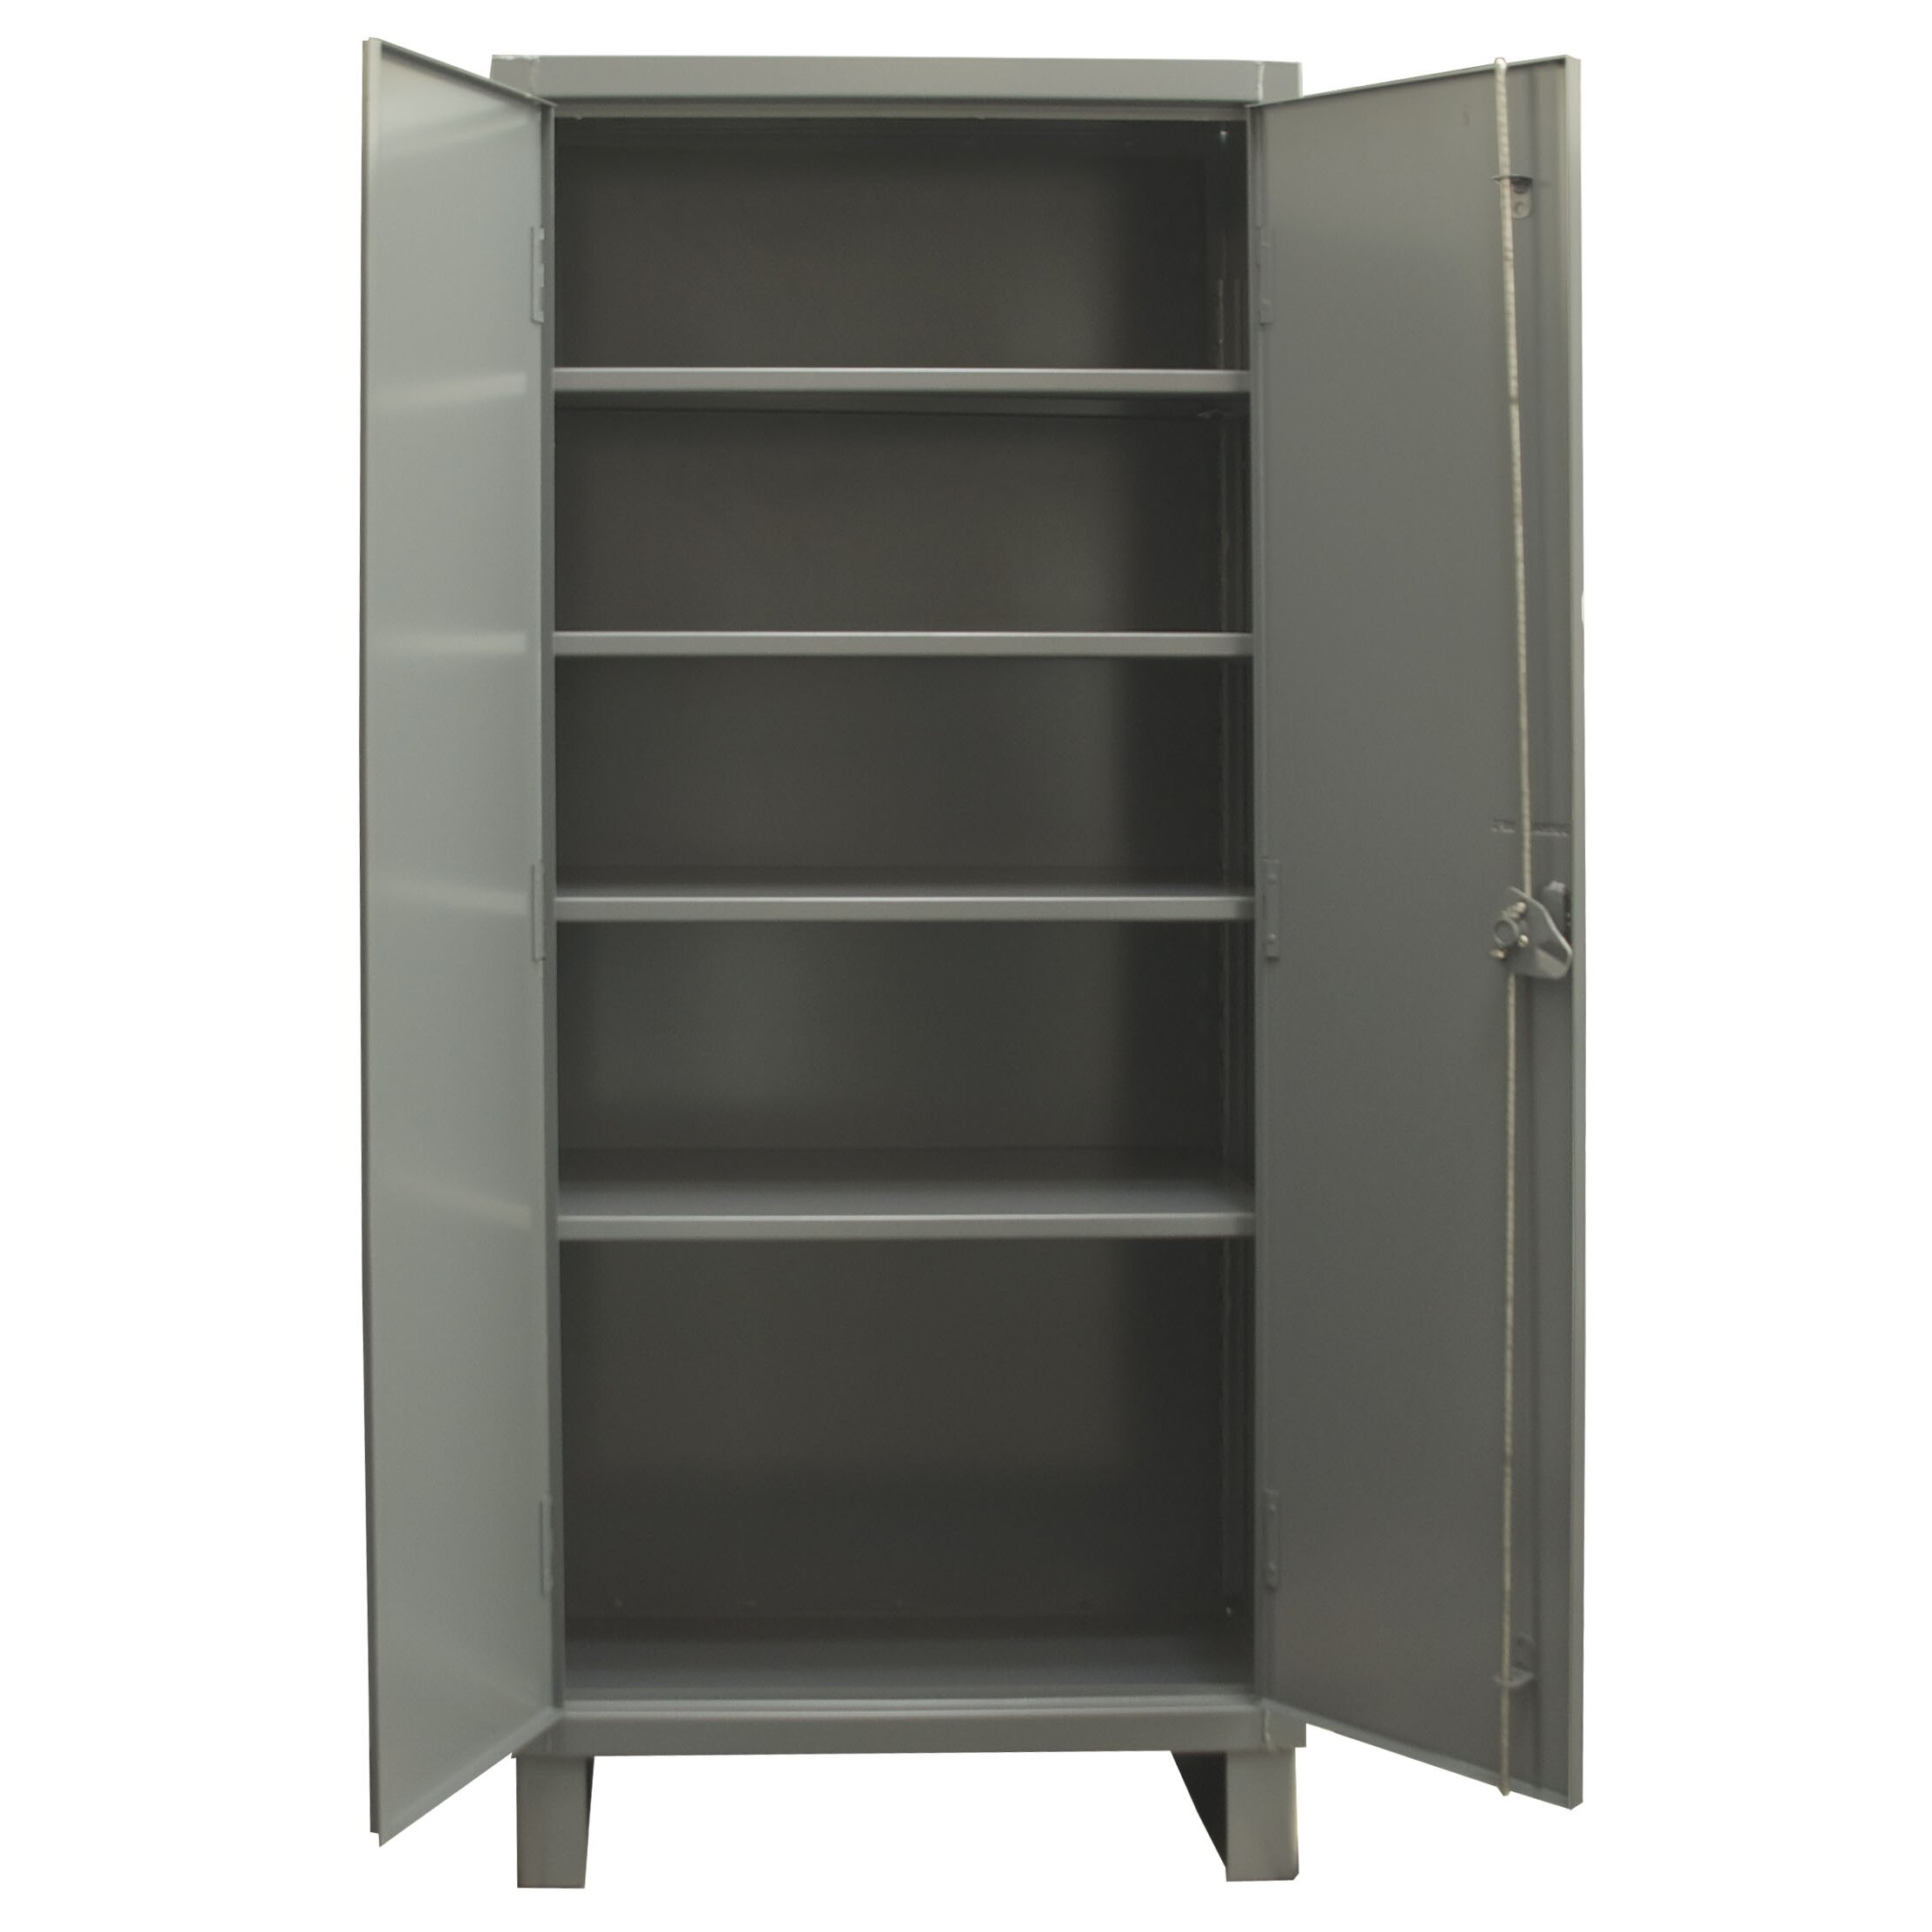 Durham manufacturing 78 h x 36 w x 18 d storage cabinet for Kitchen cabinets 36 x 18